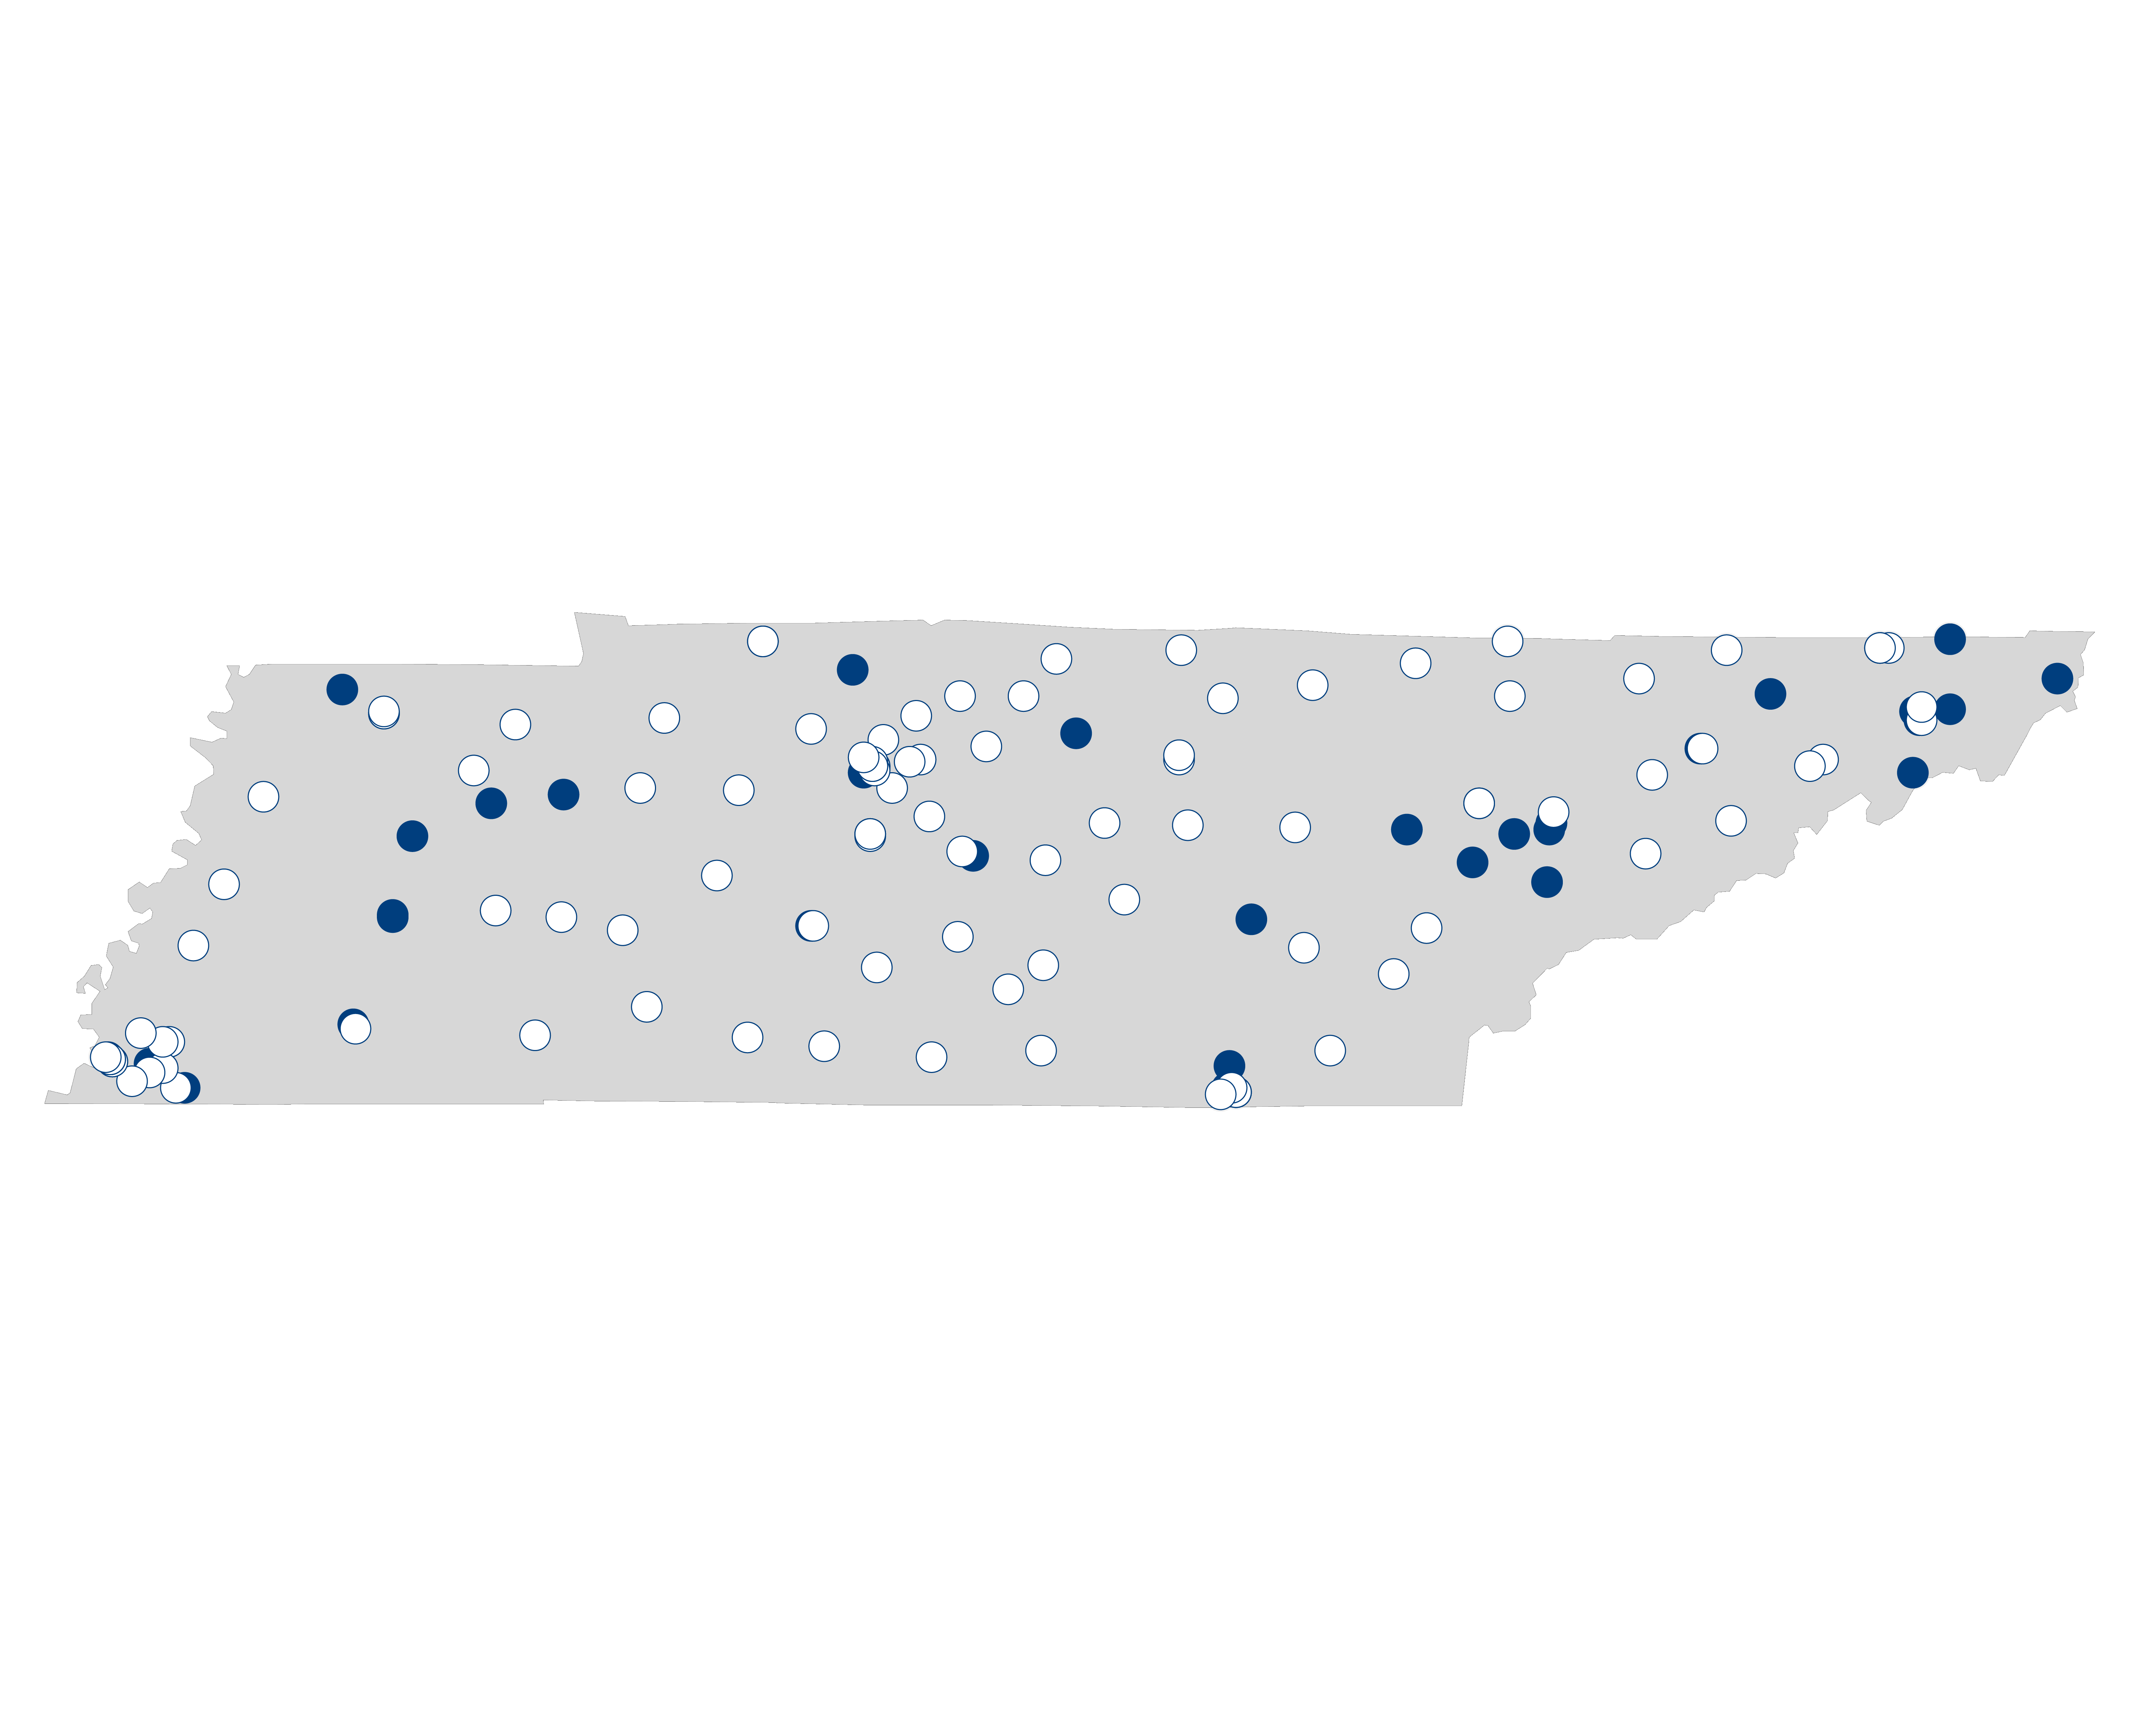 hospital palliative care map for Tennessee